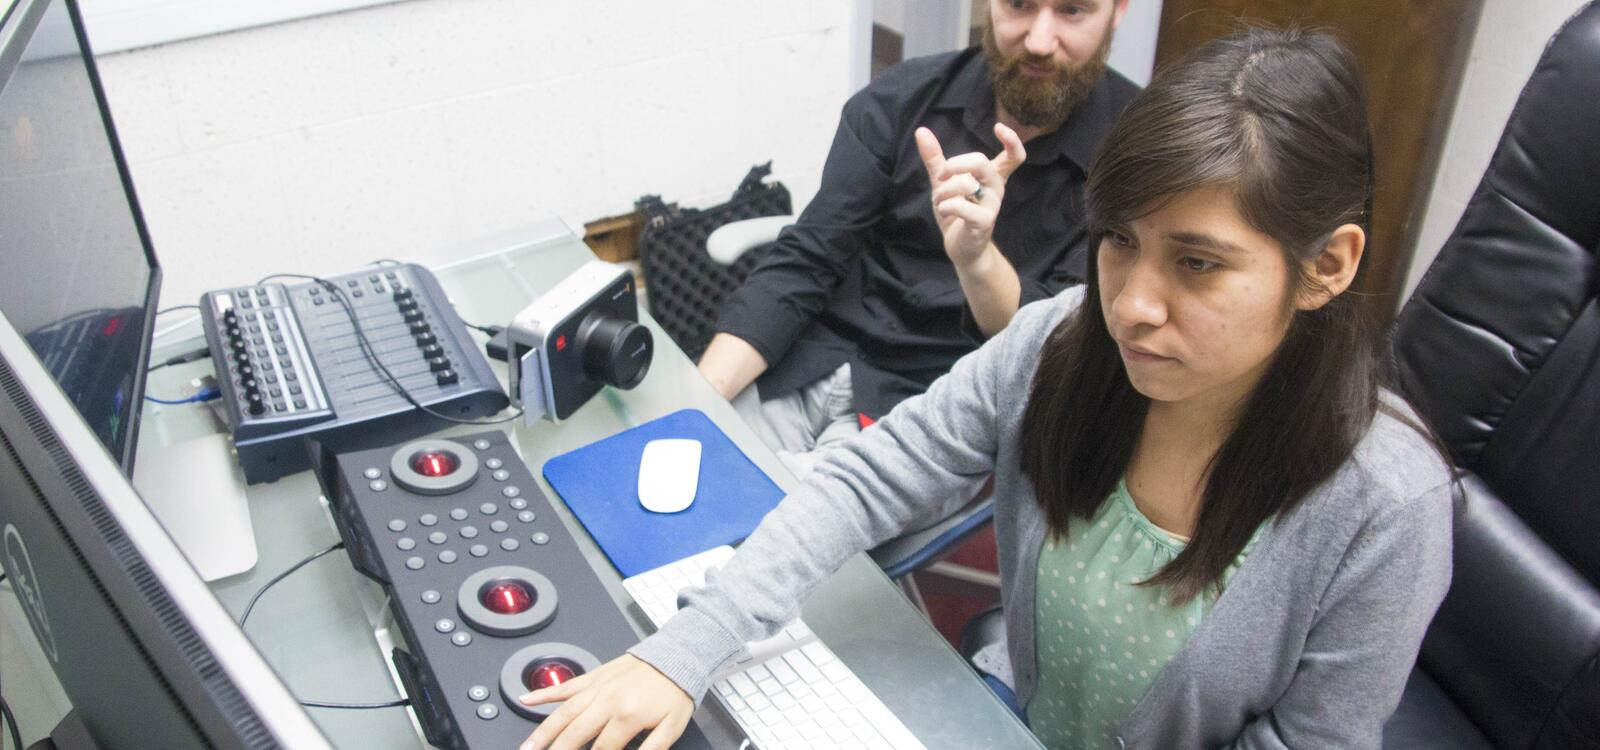 Sitting in front of a keyboard of buttons and balls, a student makes adjustments as she looks at two screens.